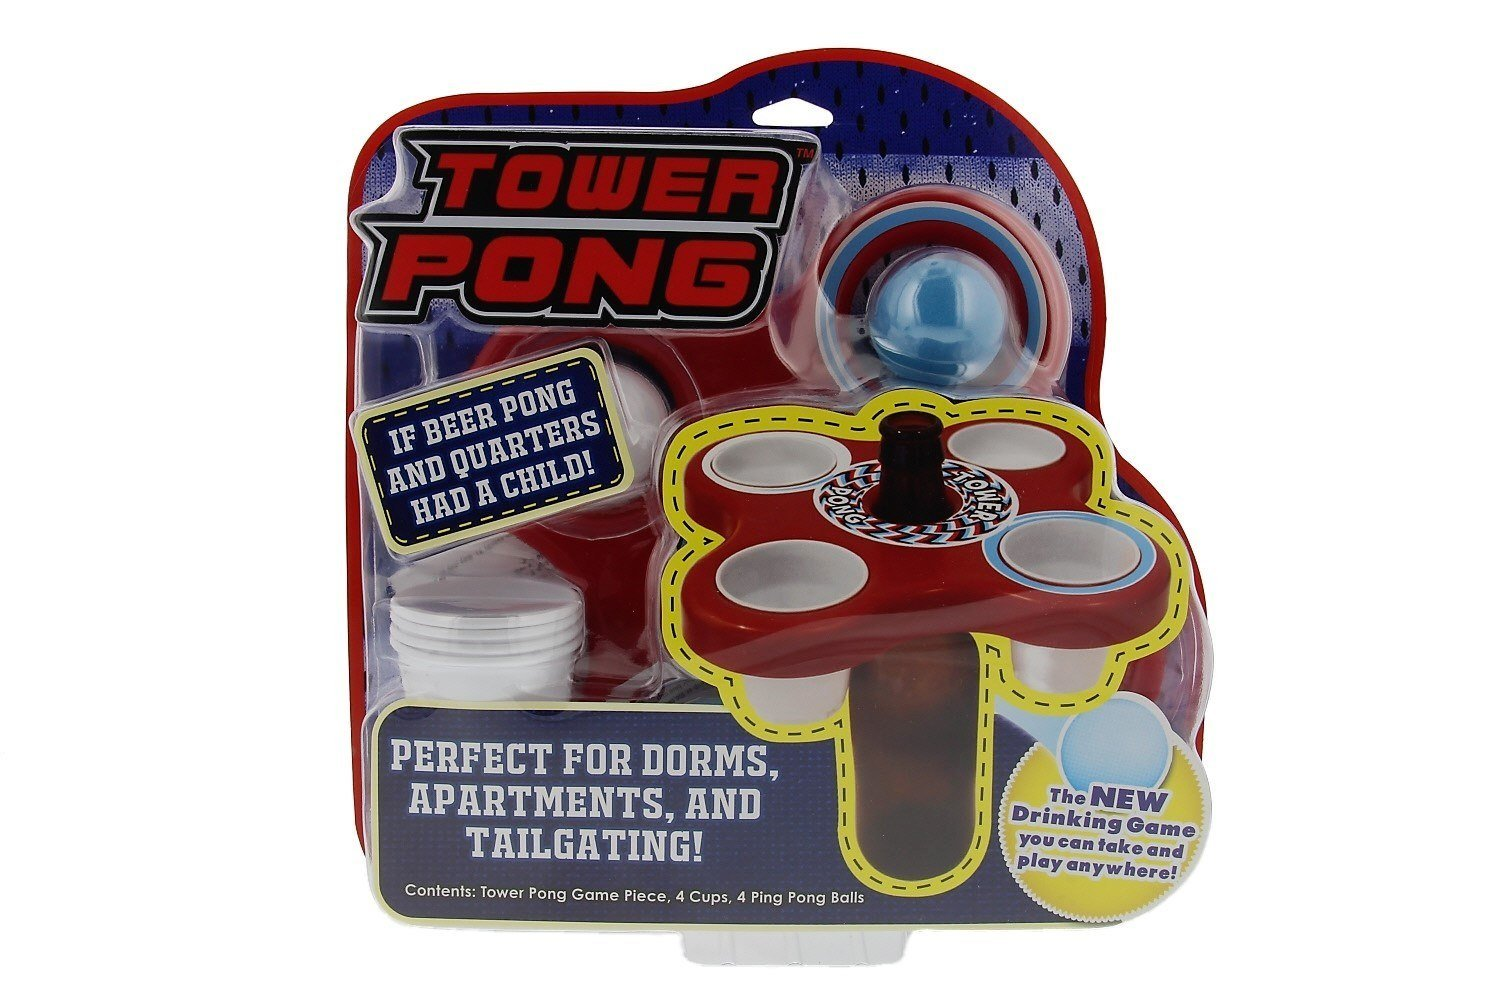 If Beer Pong and Quarters had a child, it'd be named Tower Pong. - $